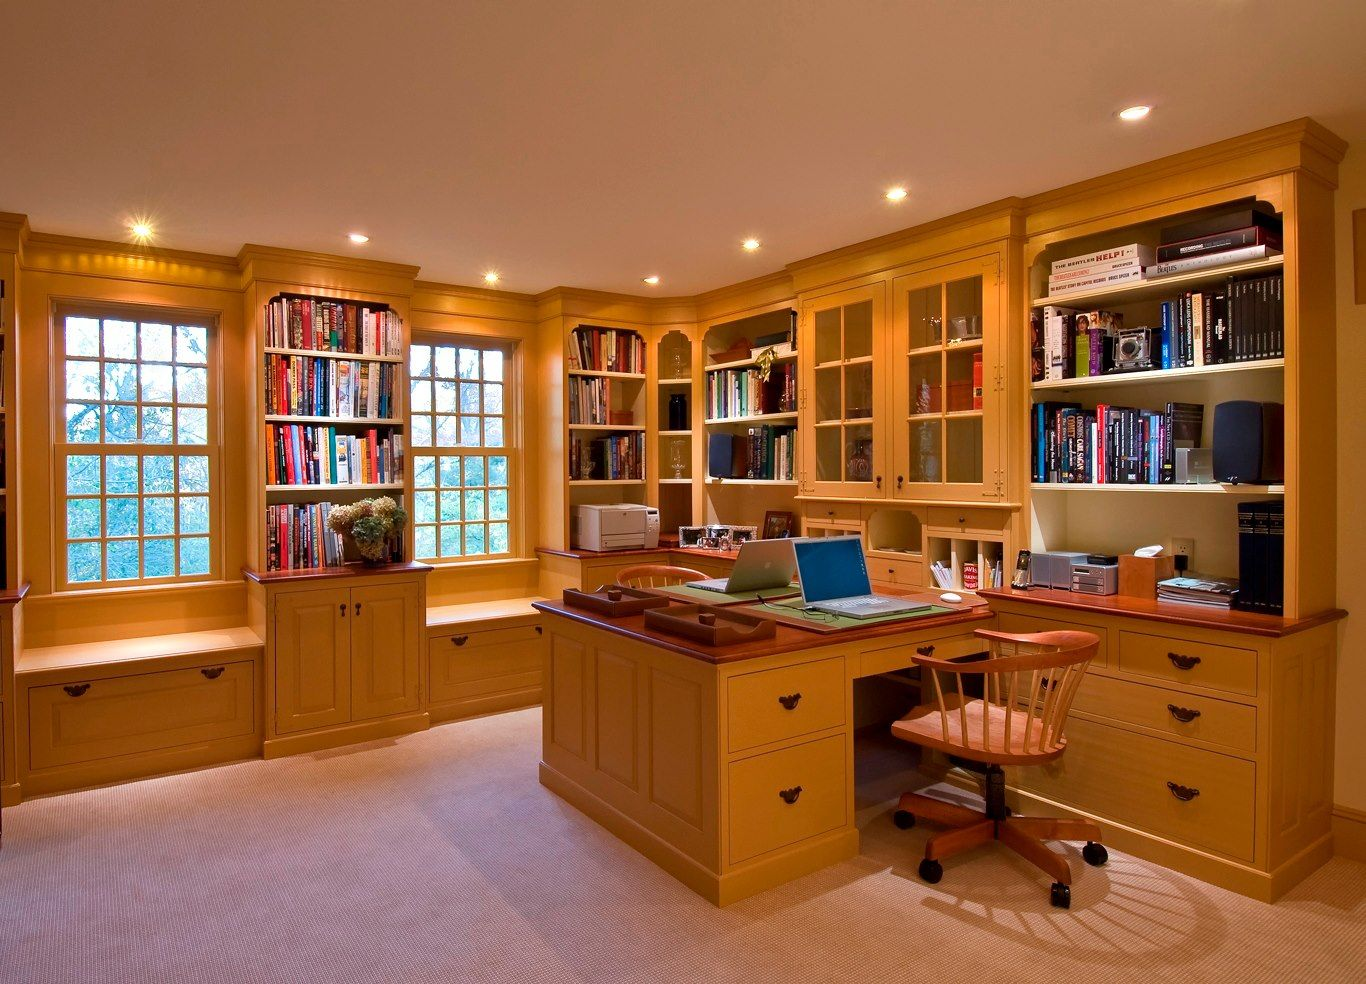 What a great home office for two people. Organize